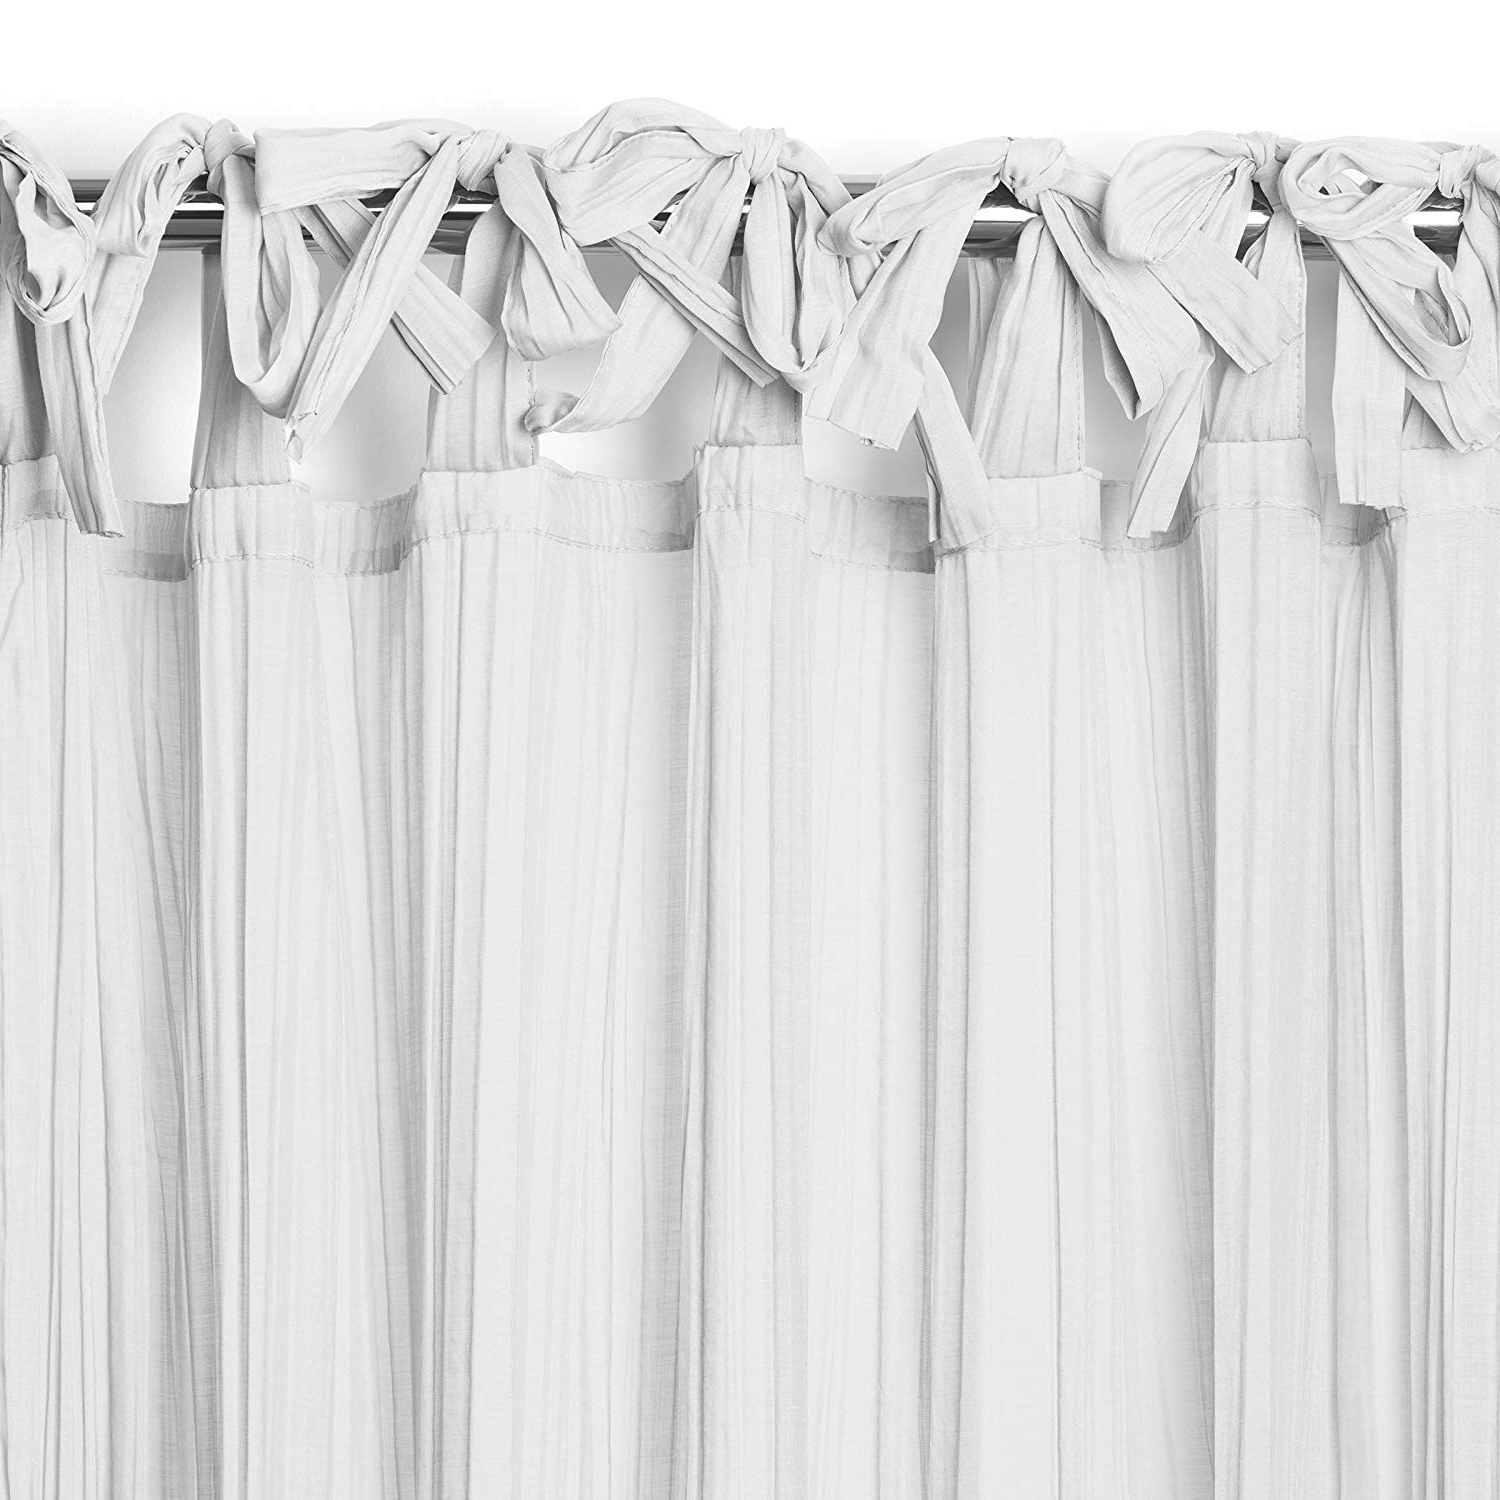 "Elrene Home Fashions Crushed Semi Sheer Adjustable Tie Top Single Panel Window Curtain Drape, 52"" X 95"" (1, White Intended For Current Elrene Jolie Tie Top Curtain Panels (View 5 of 20)"